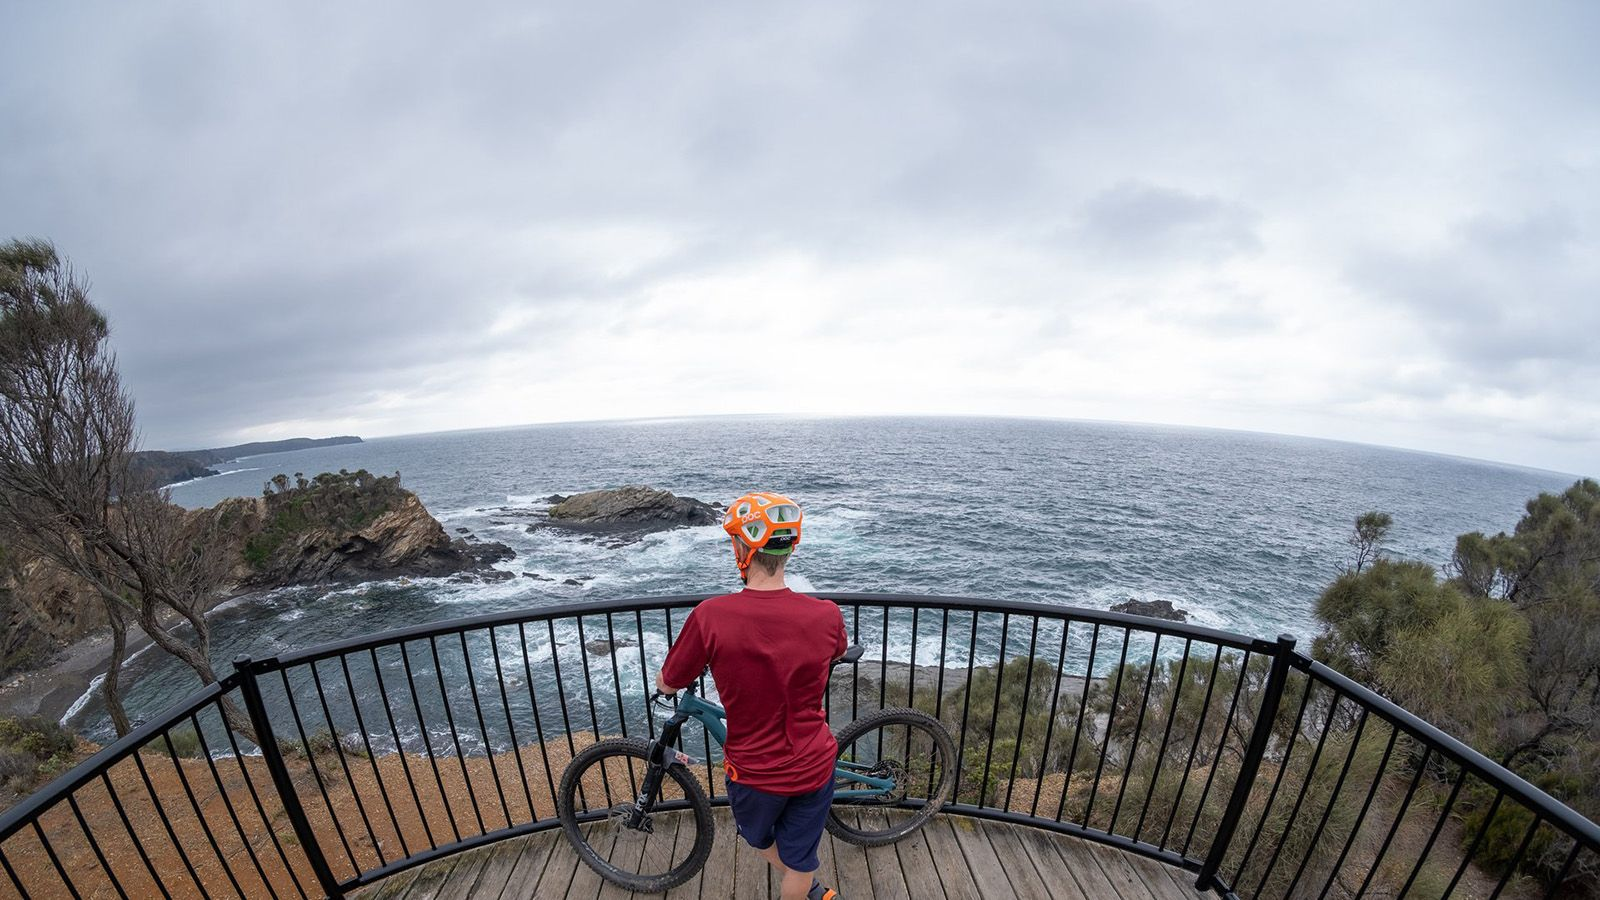 A cyclist standing next to his bike looking out over the water at a lookout with a railing banner image